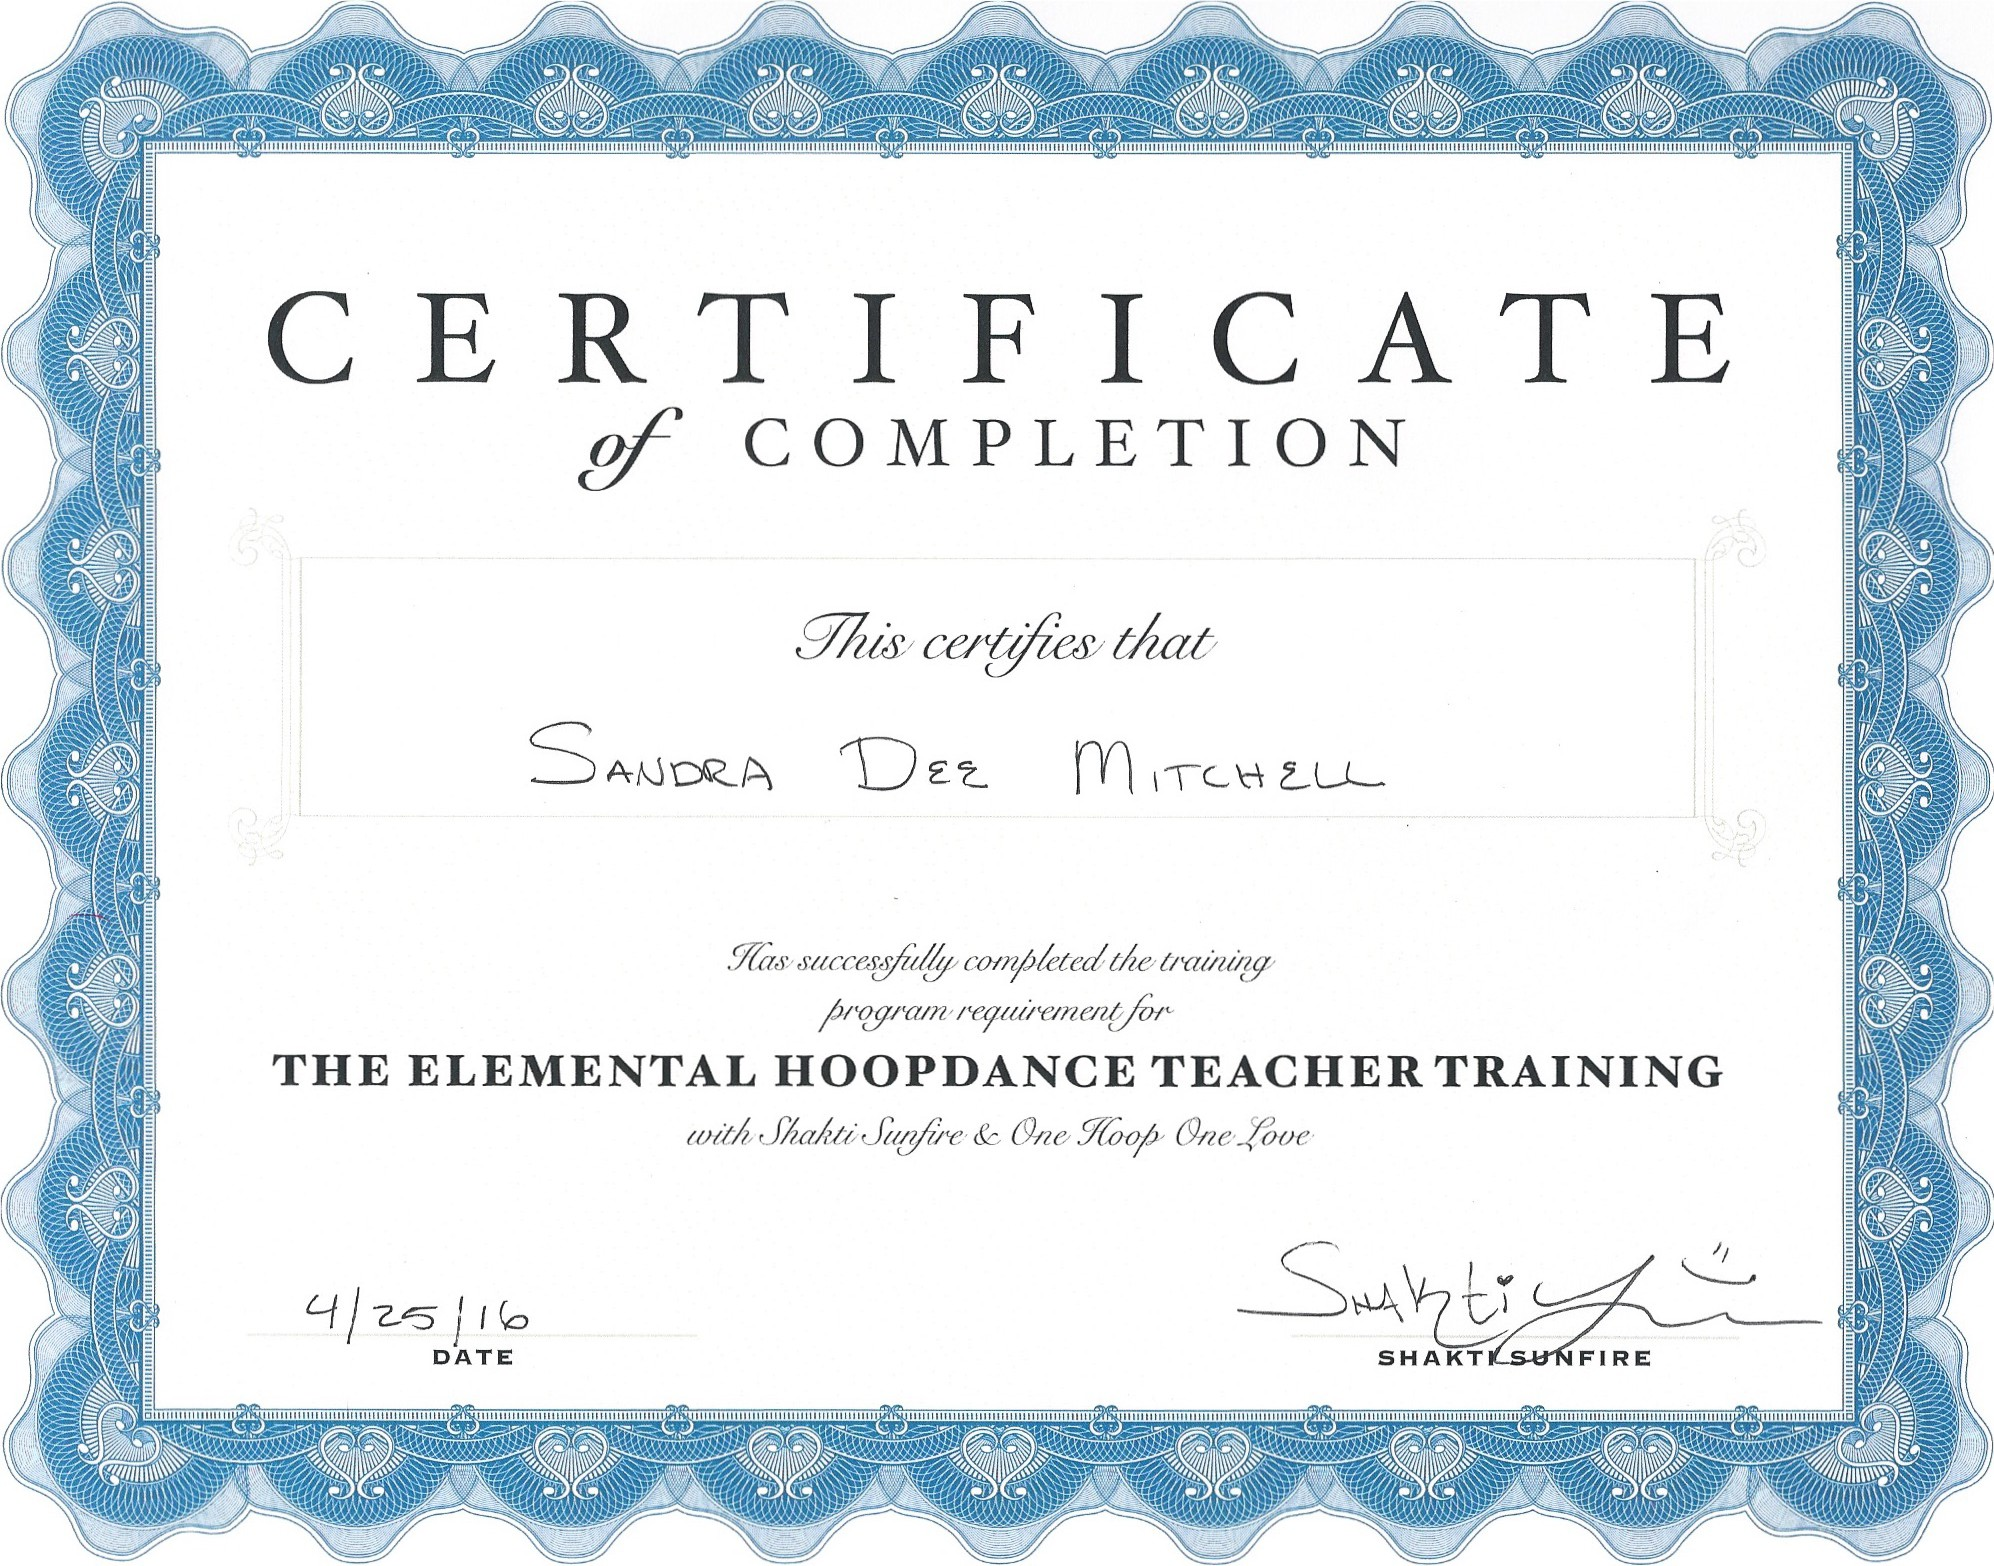 Sandra Dee's Hoop dance teacher training certificate - Hoop Flow Love, Cape Town